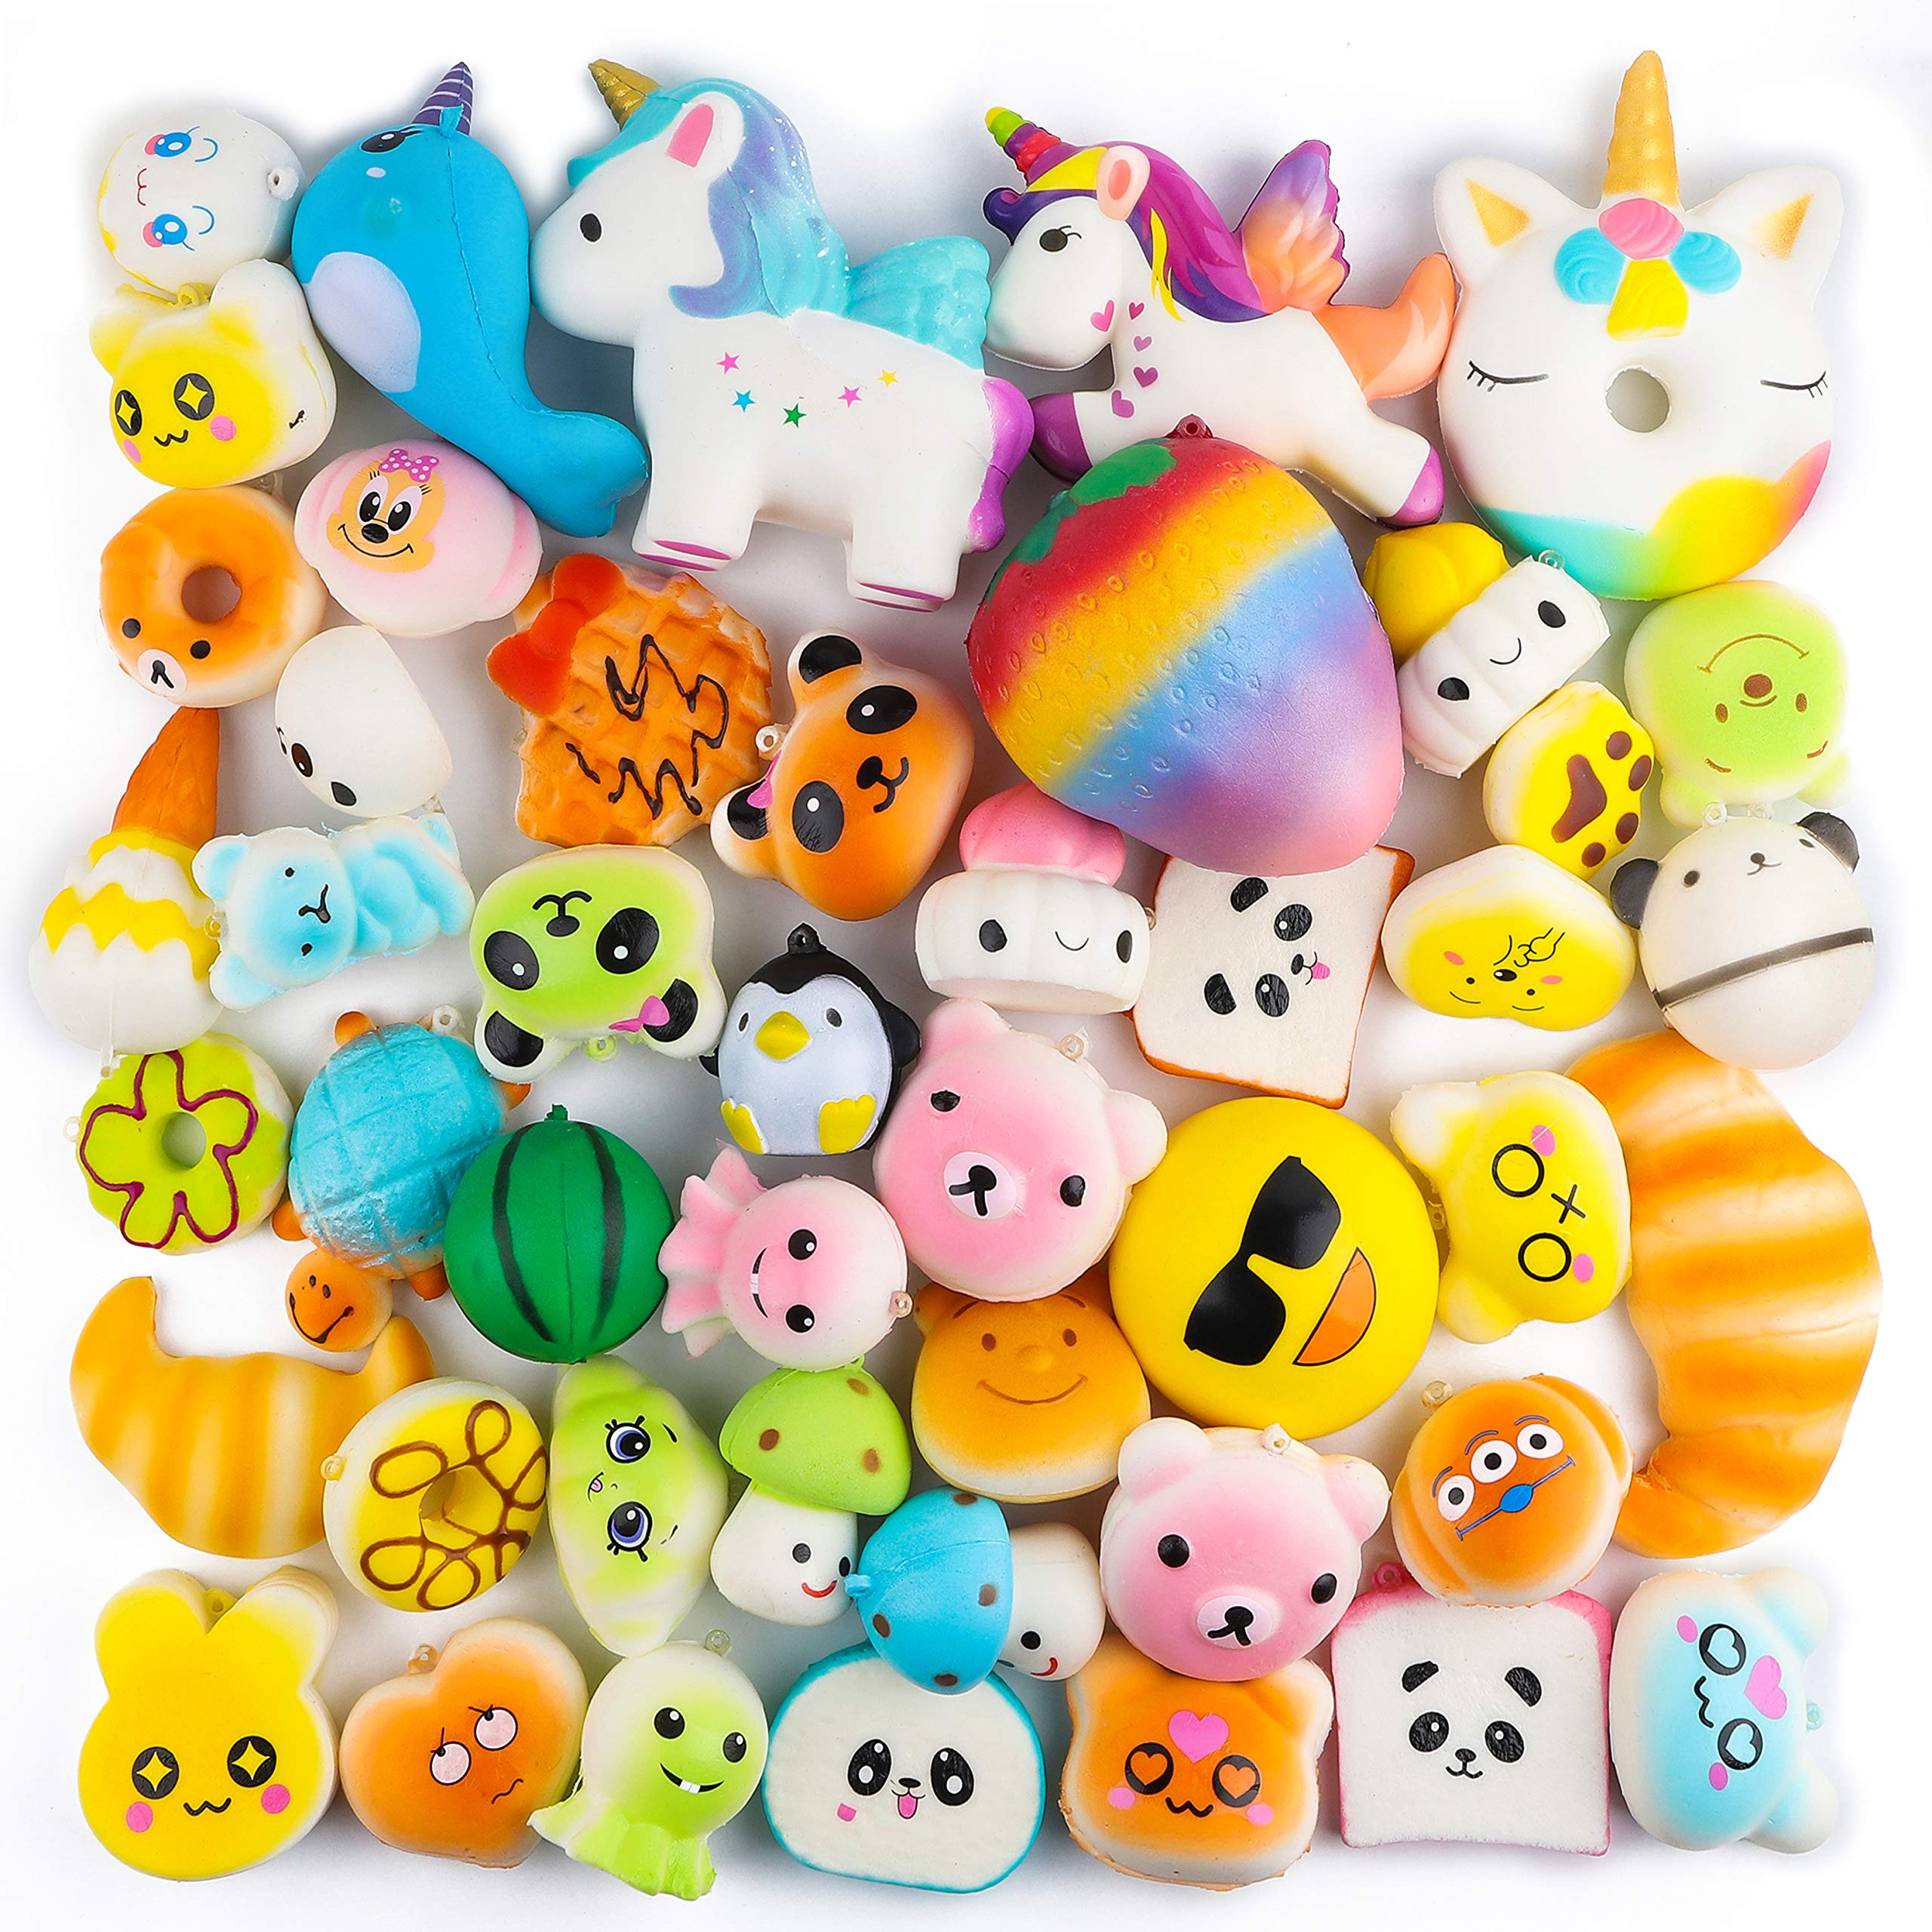 BeYumi Random 42 PCS Mini Squishy Toys 40 Kawaii Food Squishy 2 Animal Squishy Soft Cream Scented Slow Rising Squeeze Toys, Phone Straps for Kids Adults Party Favor by BeYumi (Image #1)